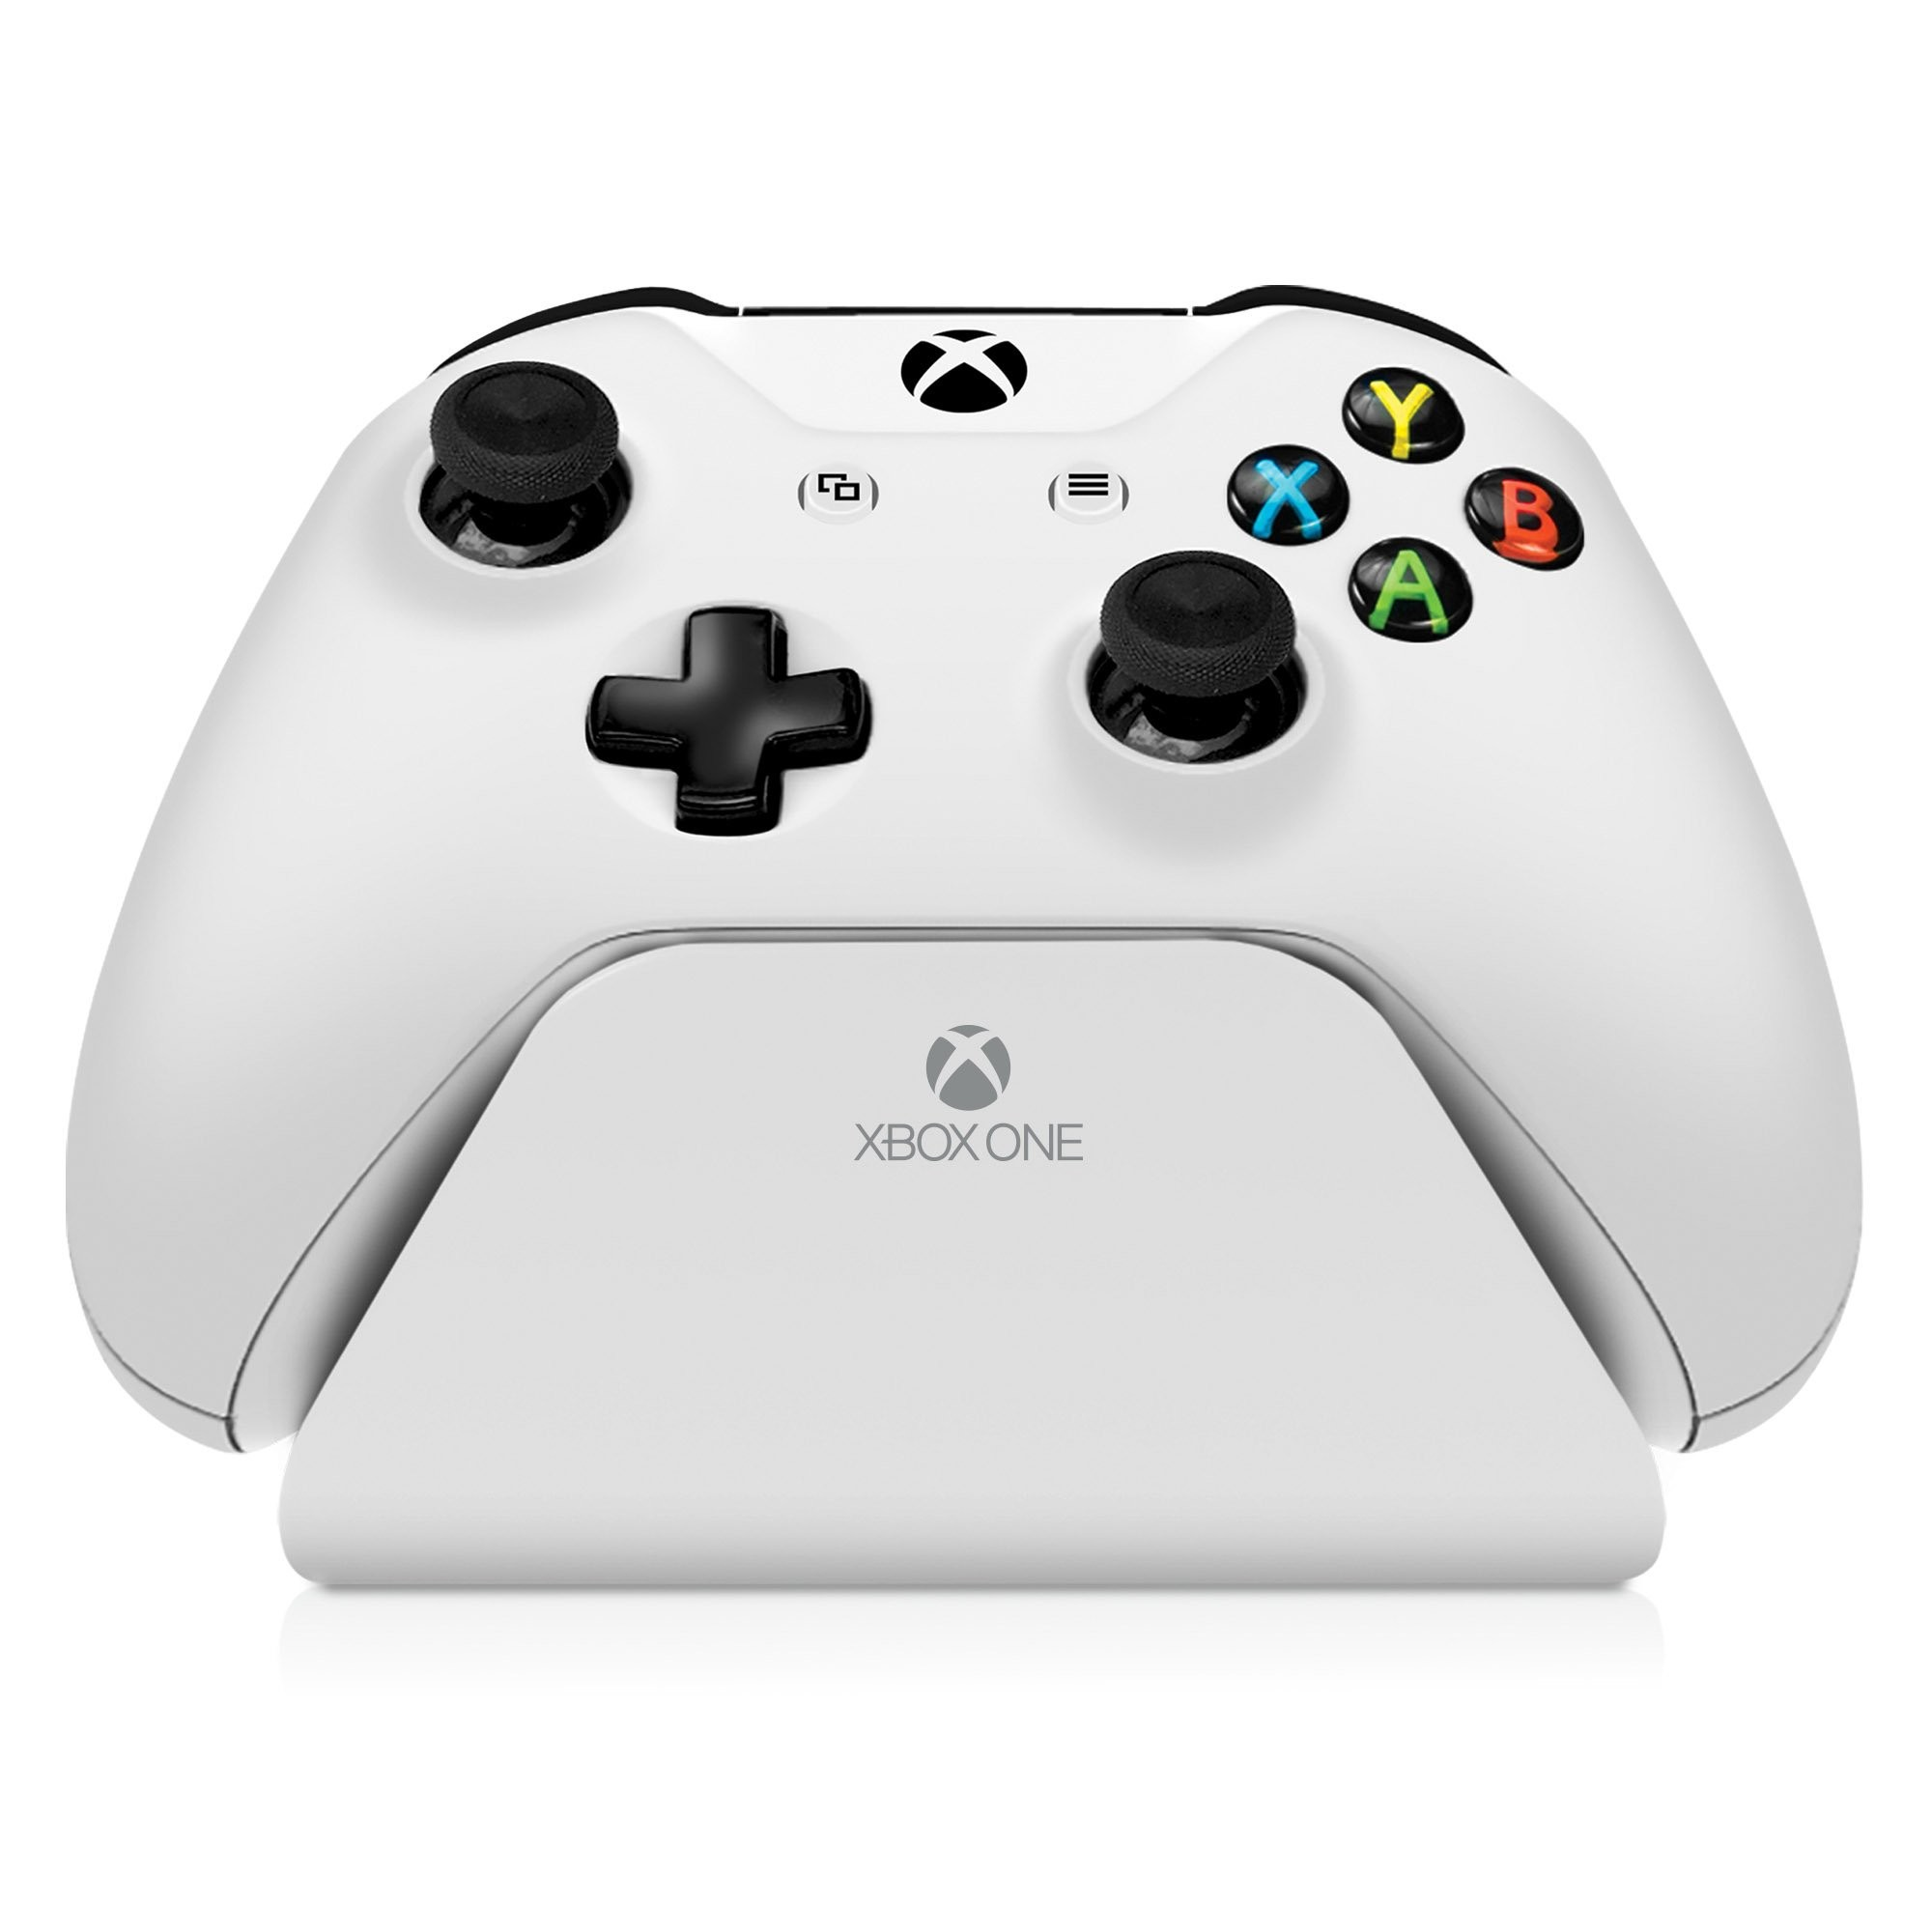 Xbox One Controller Stand with an all white color, Image 1